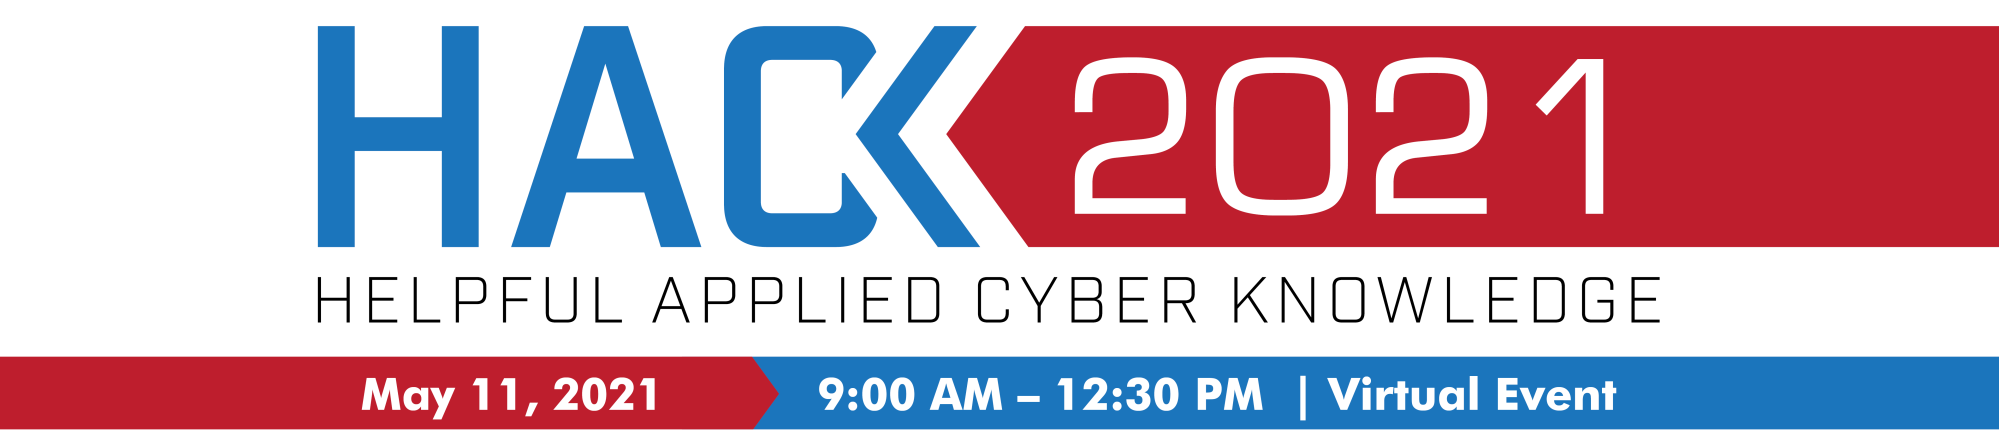 Nuclear Regulatory Commission Virtual Cybersecurity Seminar & Expo